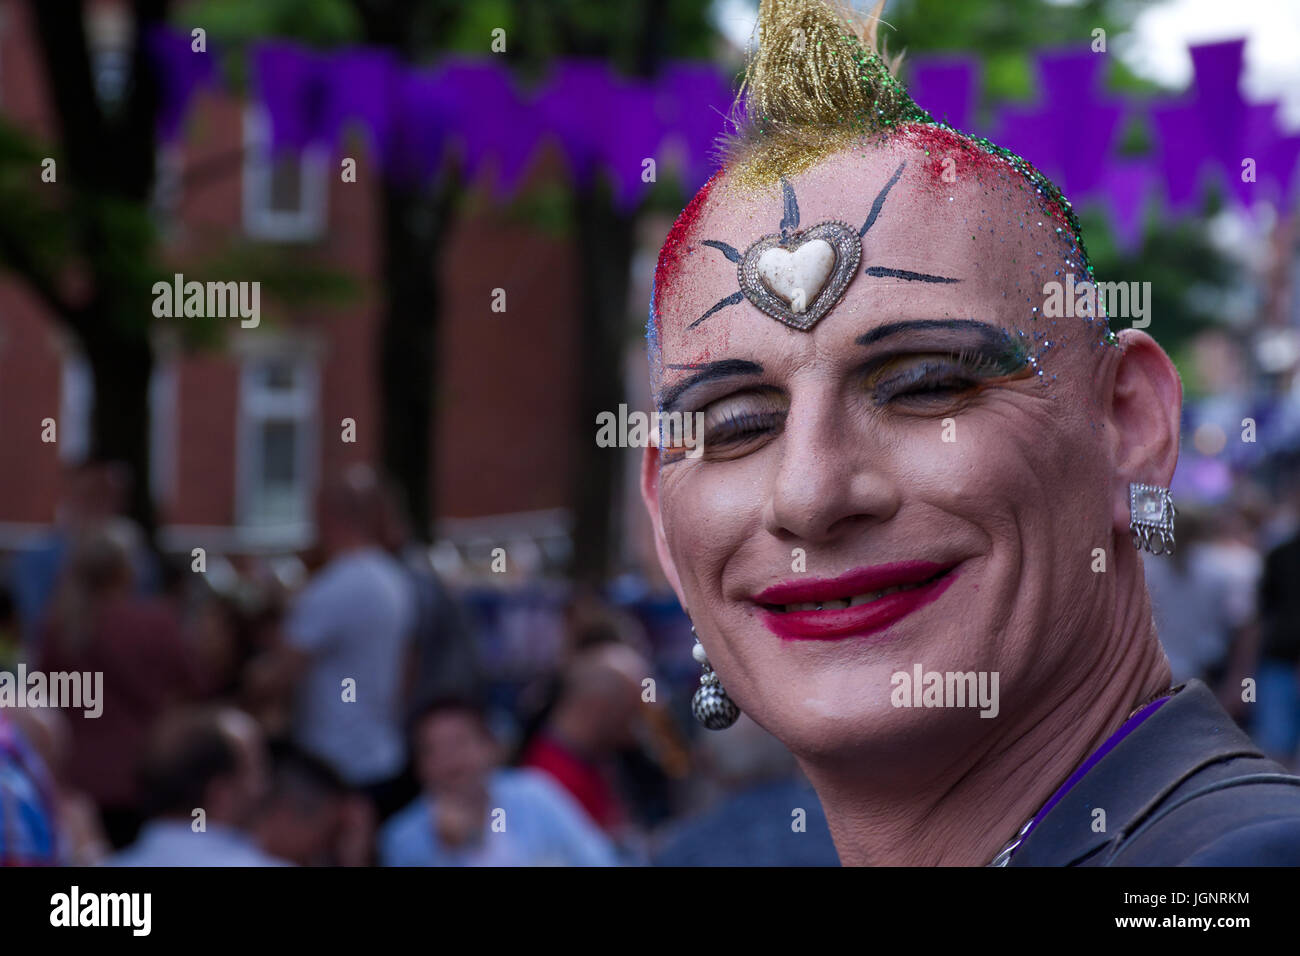 Manchester,UK.08th July ,2017.Happy person on Sparkle transgender pride event.Credit:JazzLove/Alamy Live News. - Stock Image